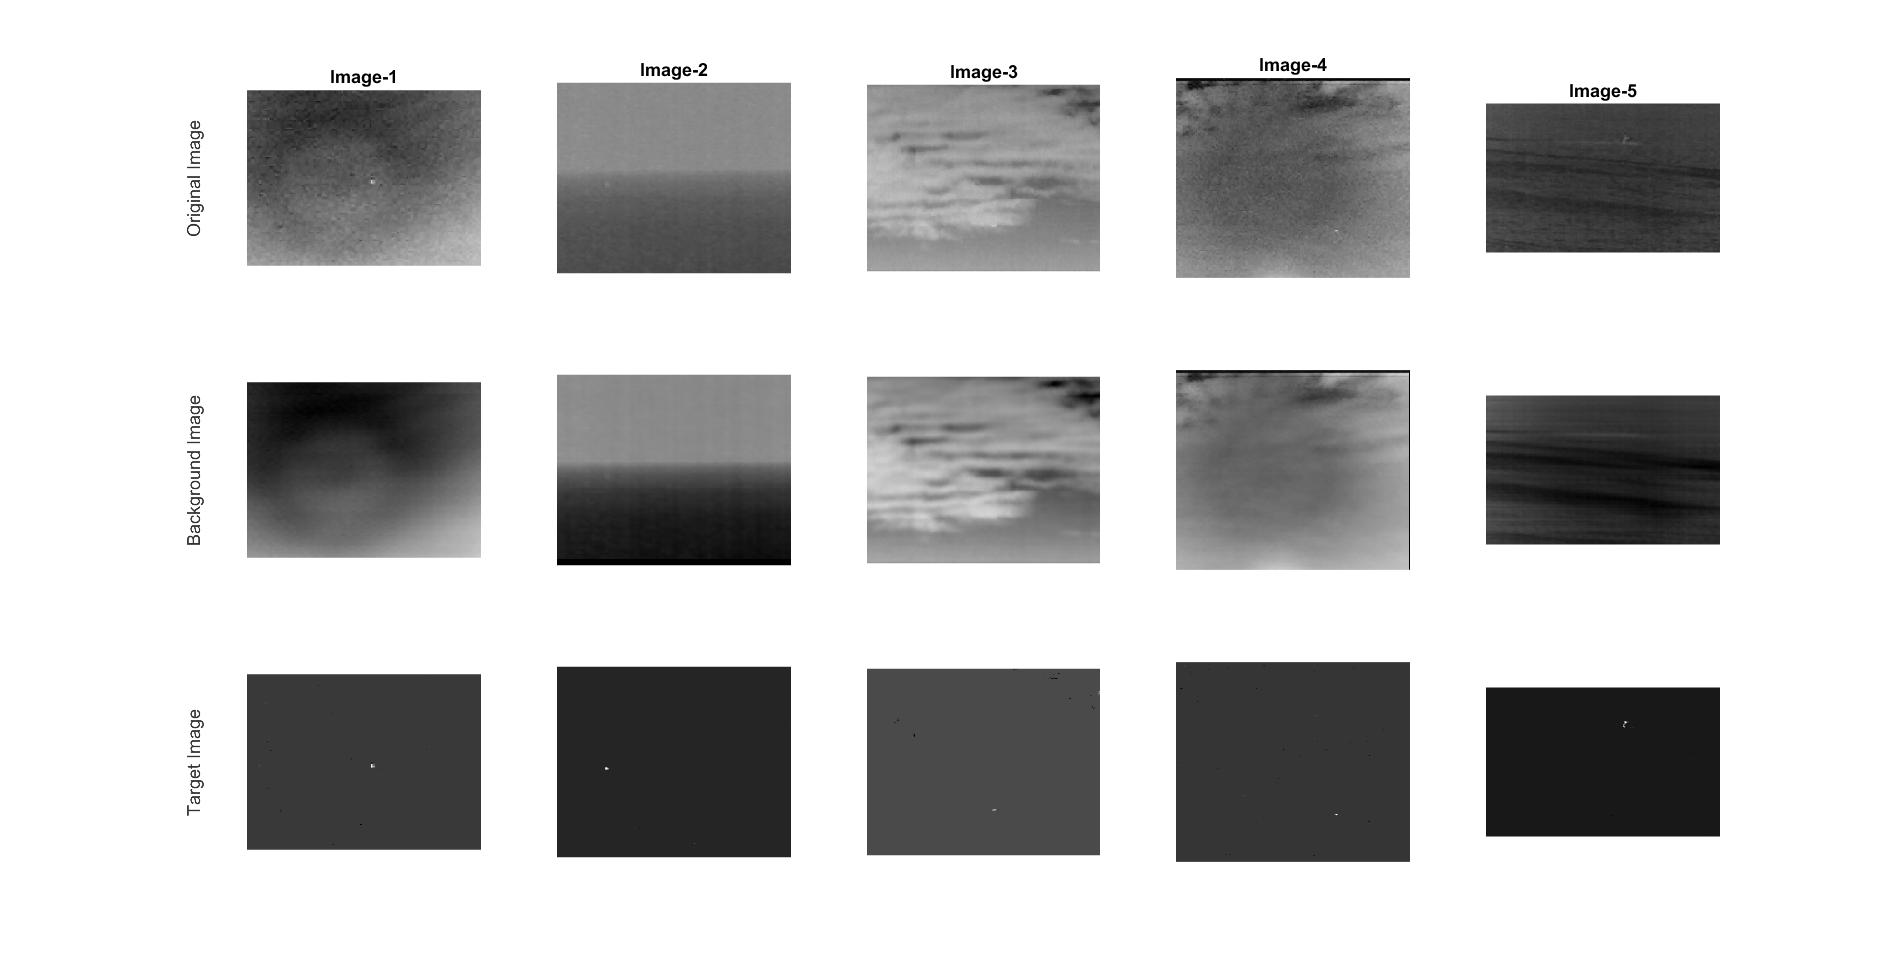 Infrared Patch-Image Model for Small Target Detection in a Single Image